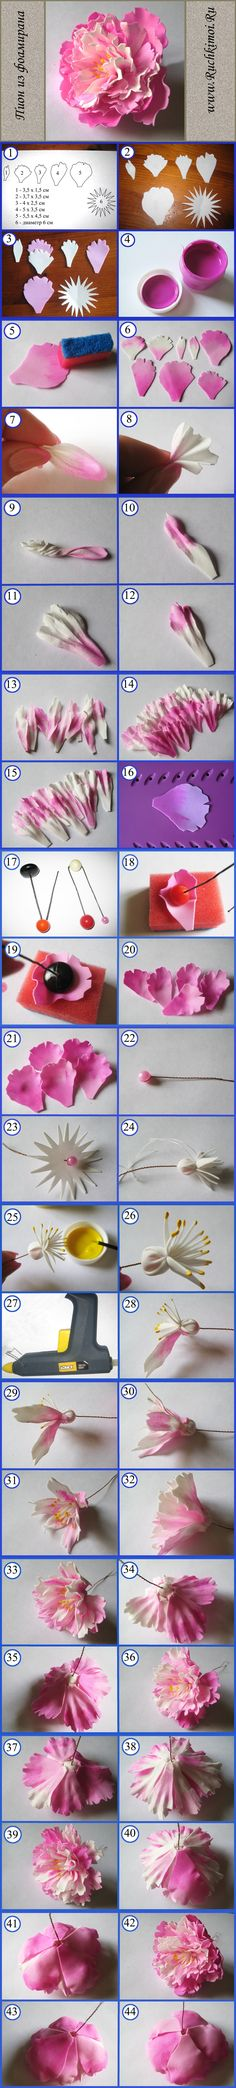 Discover thousands of images about Fabric flower tutorial that would work well with watercolor paper as well. Crepe Paper Flowers, Felt Flowers, Diy Flowers, Fabric Flowers, Polymer Clay Flowers, Polymer Clay Crafts, Fleurs Diy, Gum Paste Flowers, Flower Template